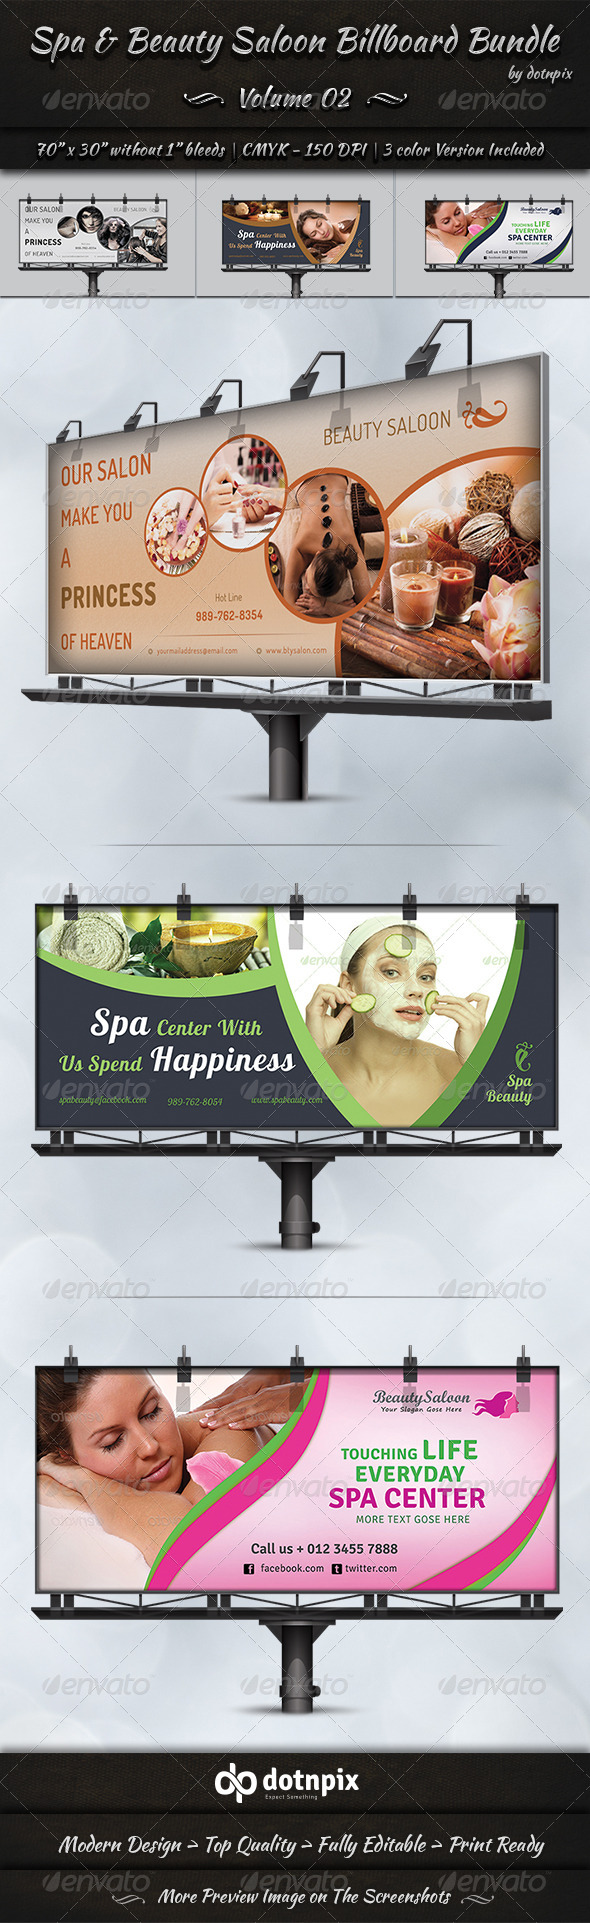 GraphicRiver Spa & Beauty Saloon Billboard Bundle Volume 2 8127359